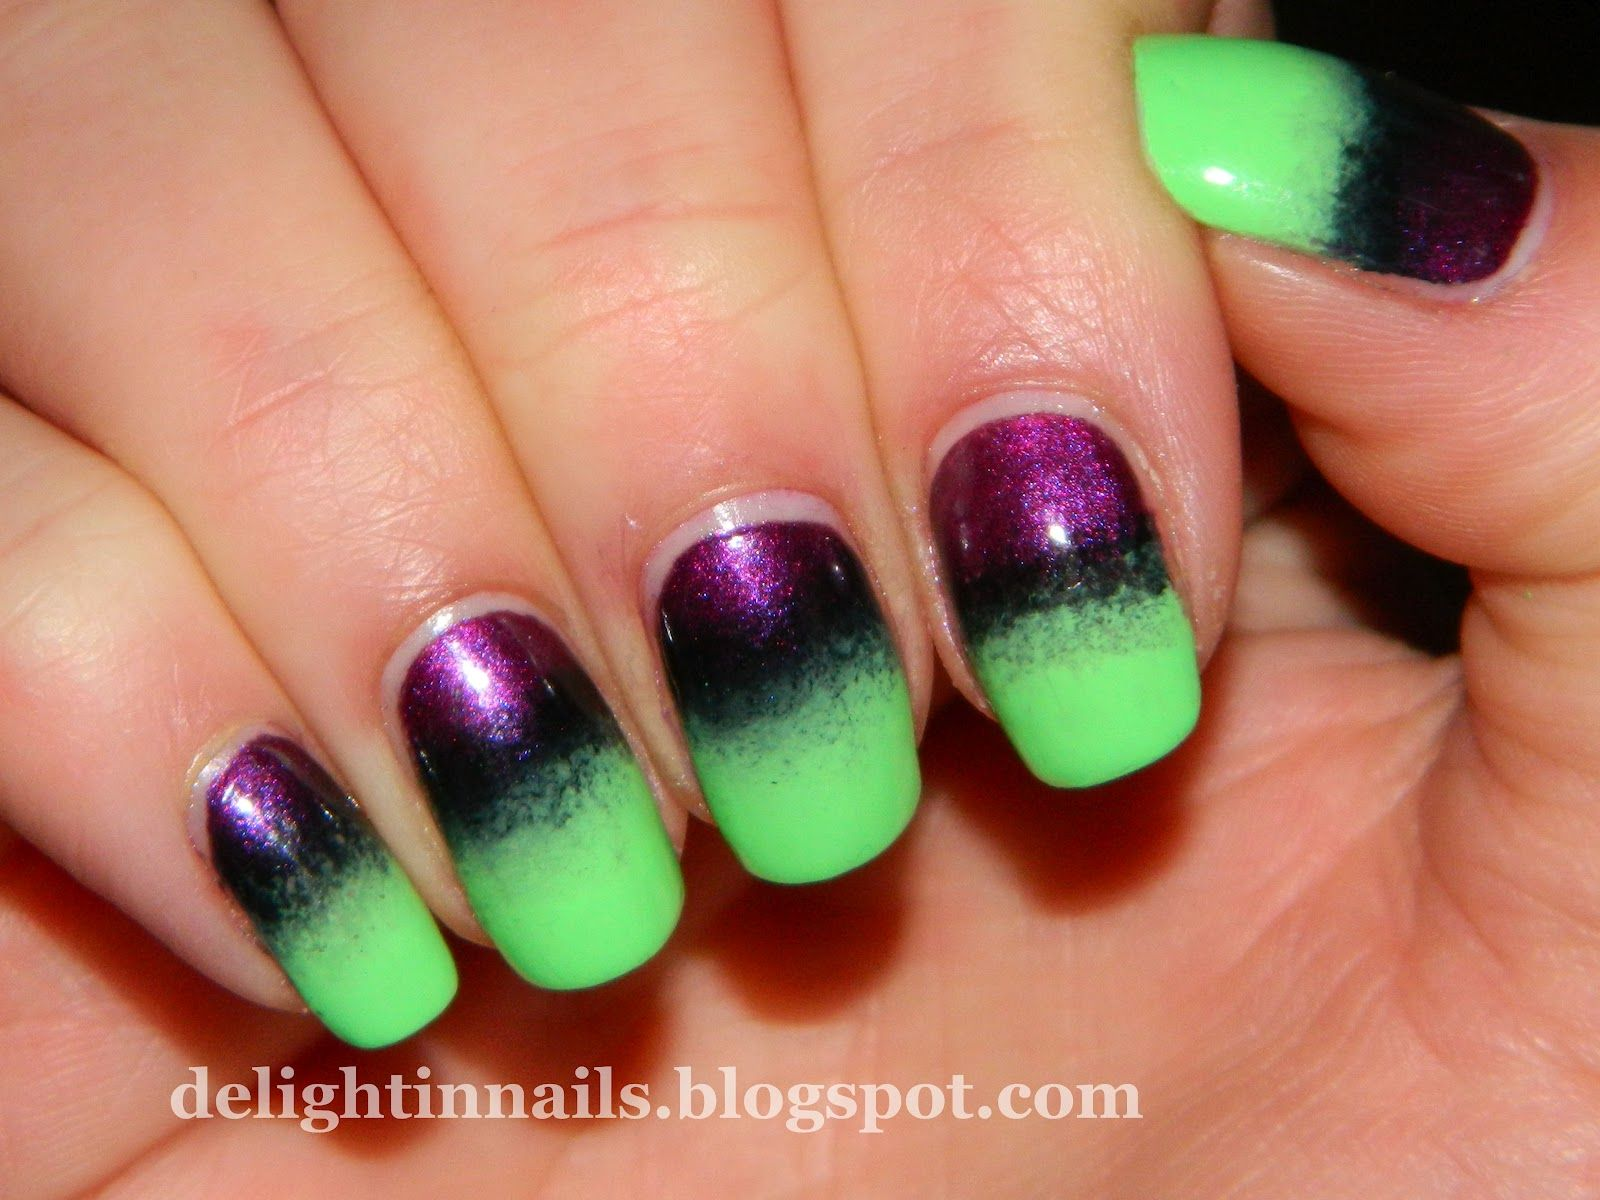 delight in nails: nail-aween nail art challenge - matte dotticure